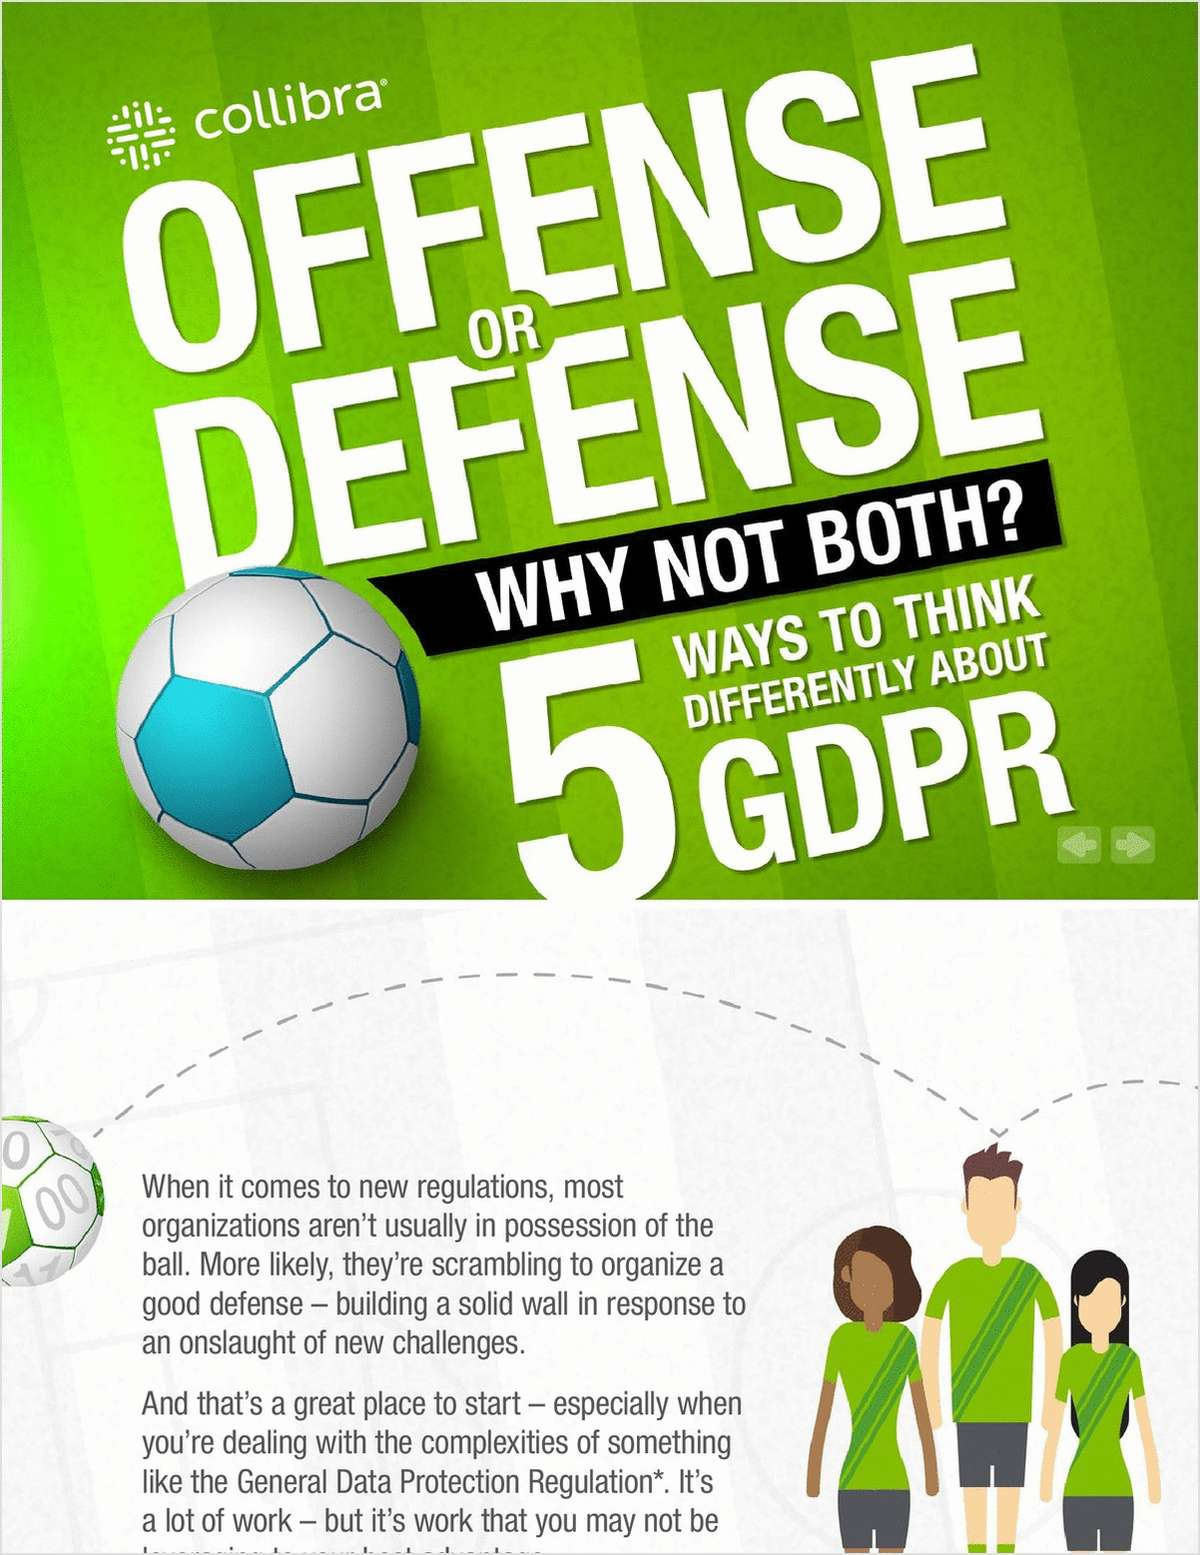 5 Ways to Think Differently About GDPR